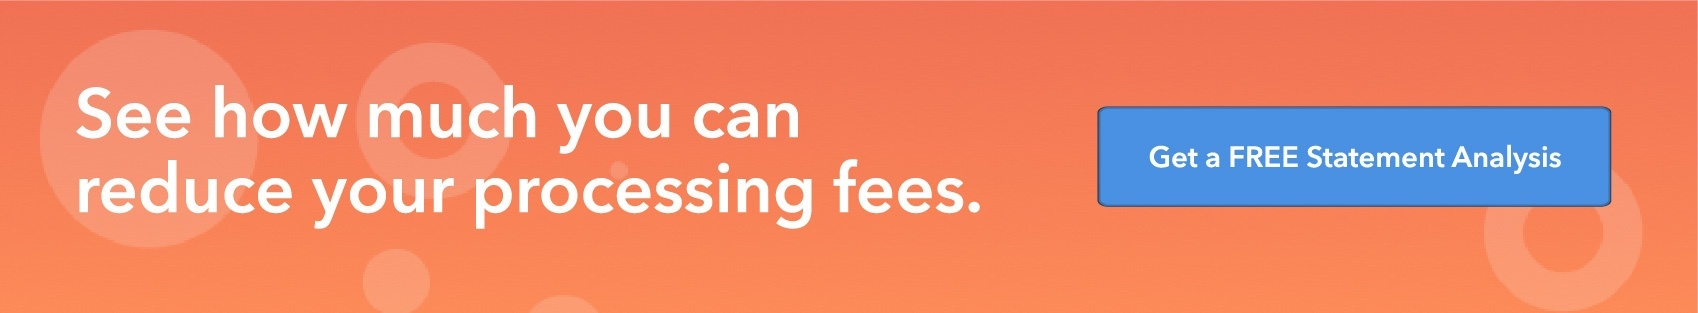 See how much you can reduce your processing fees. Free statement analysis.